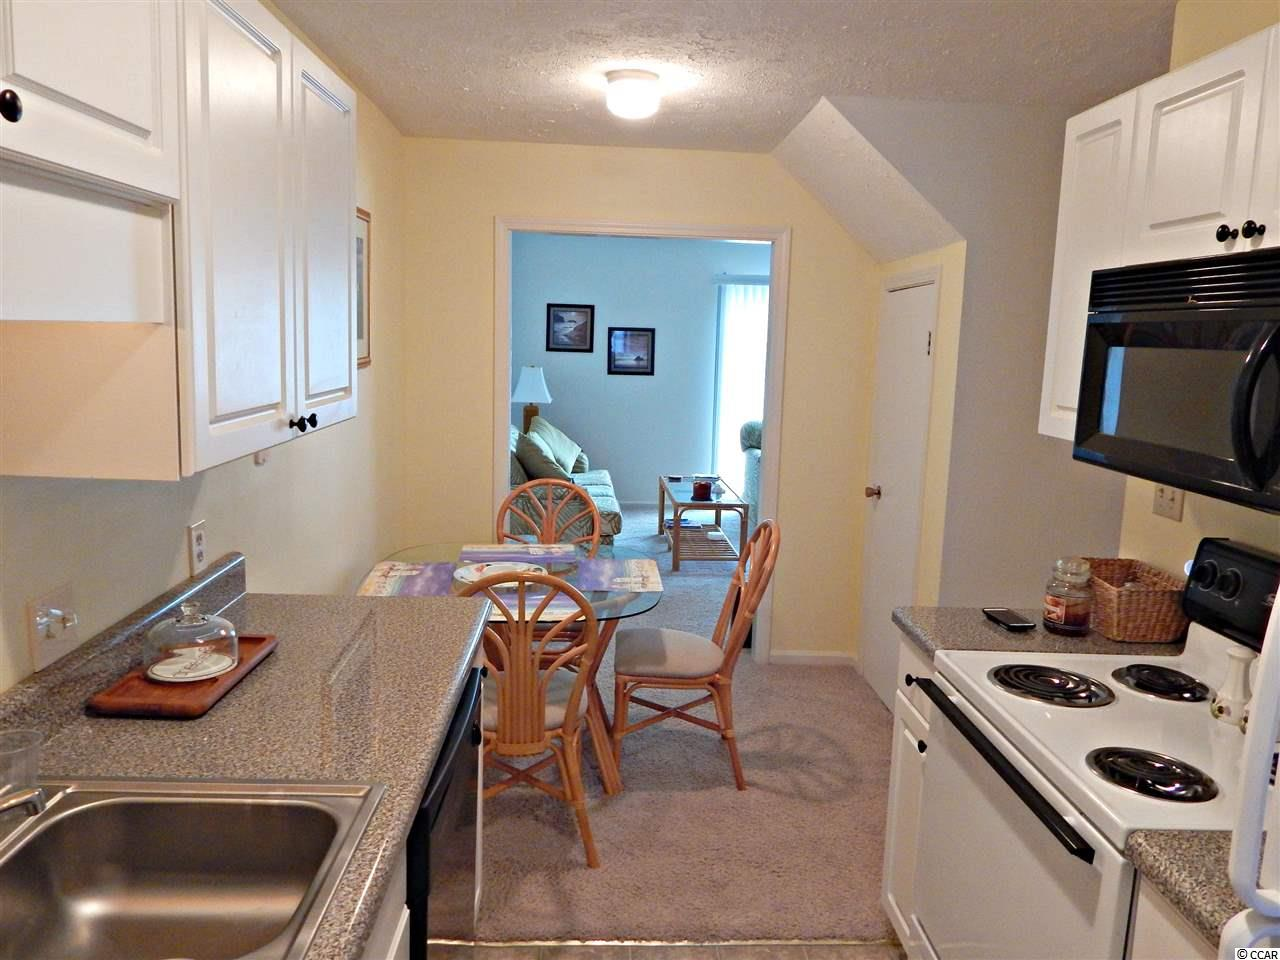 Real estate for sale at  Westfield condos - Myrtle Beach, SC